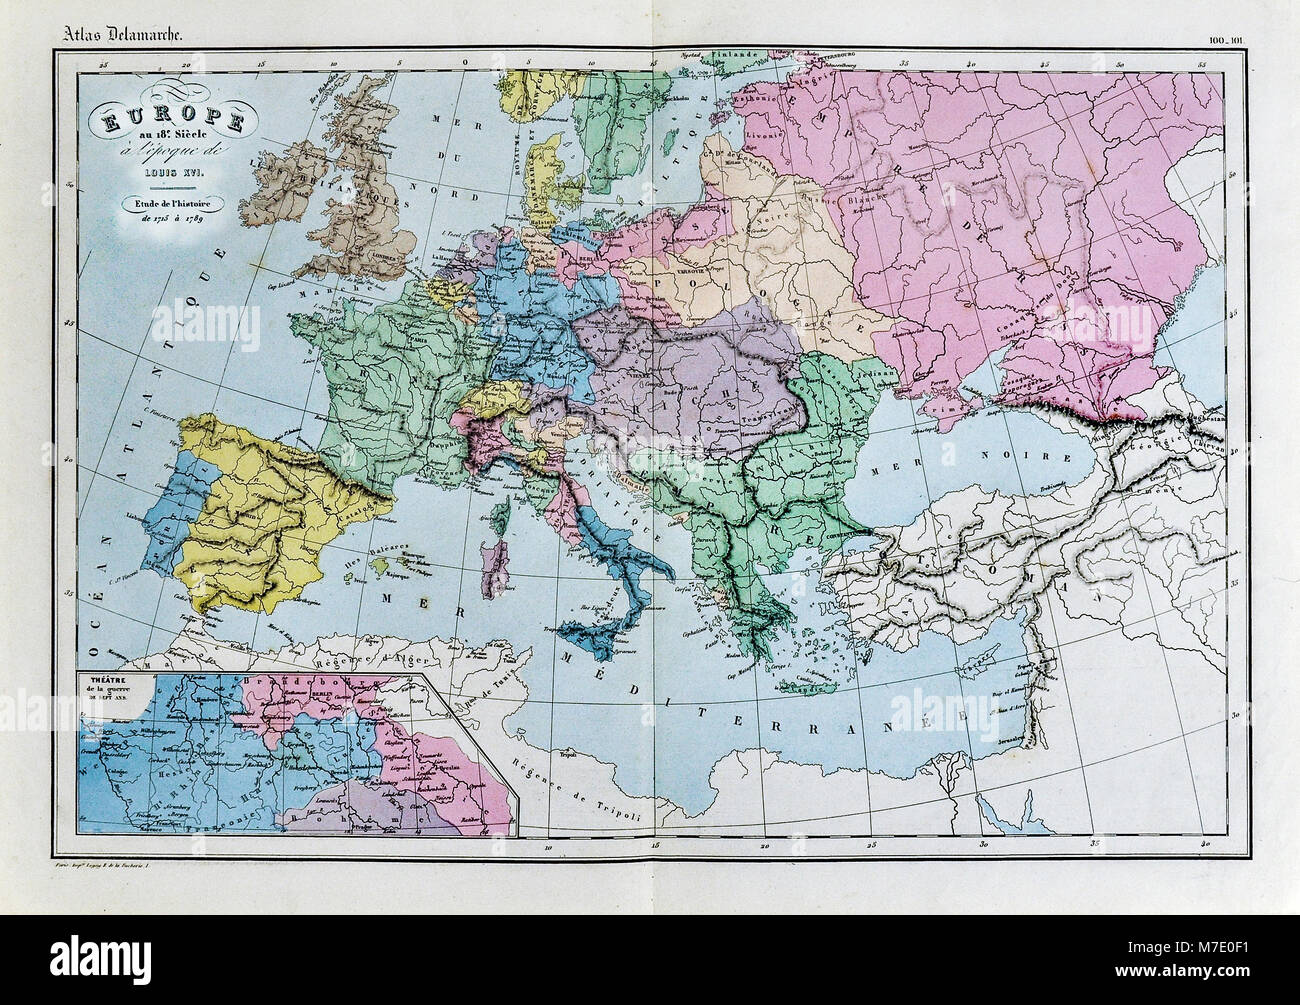 1858 Delamarche Historical Map Of Europe In The 18th Century During